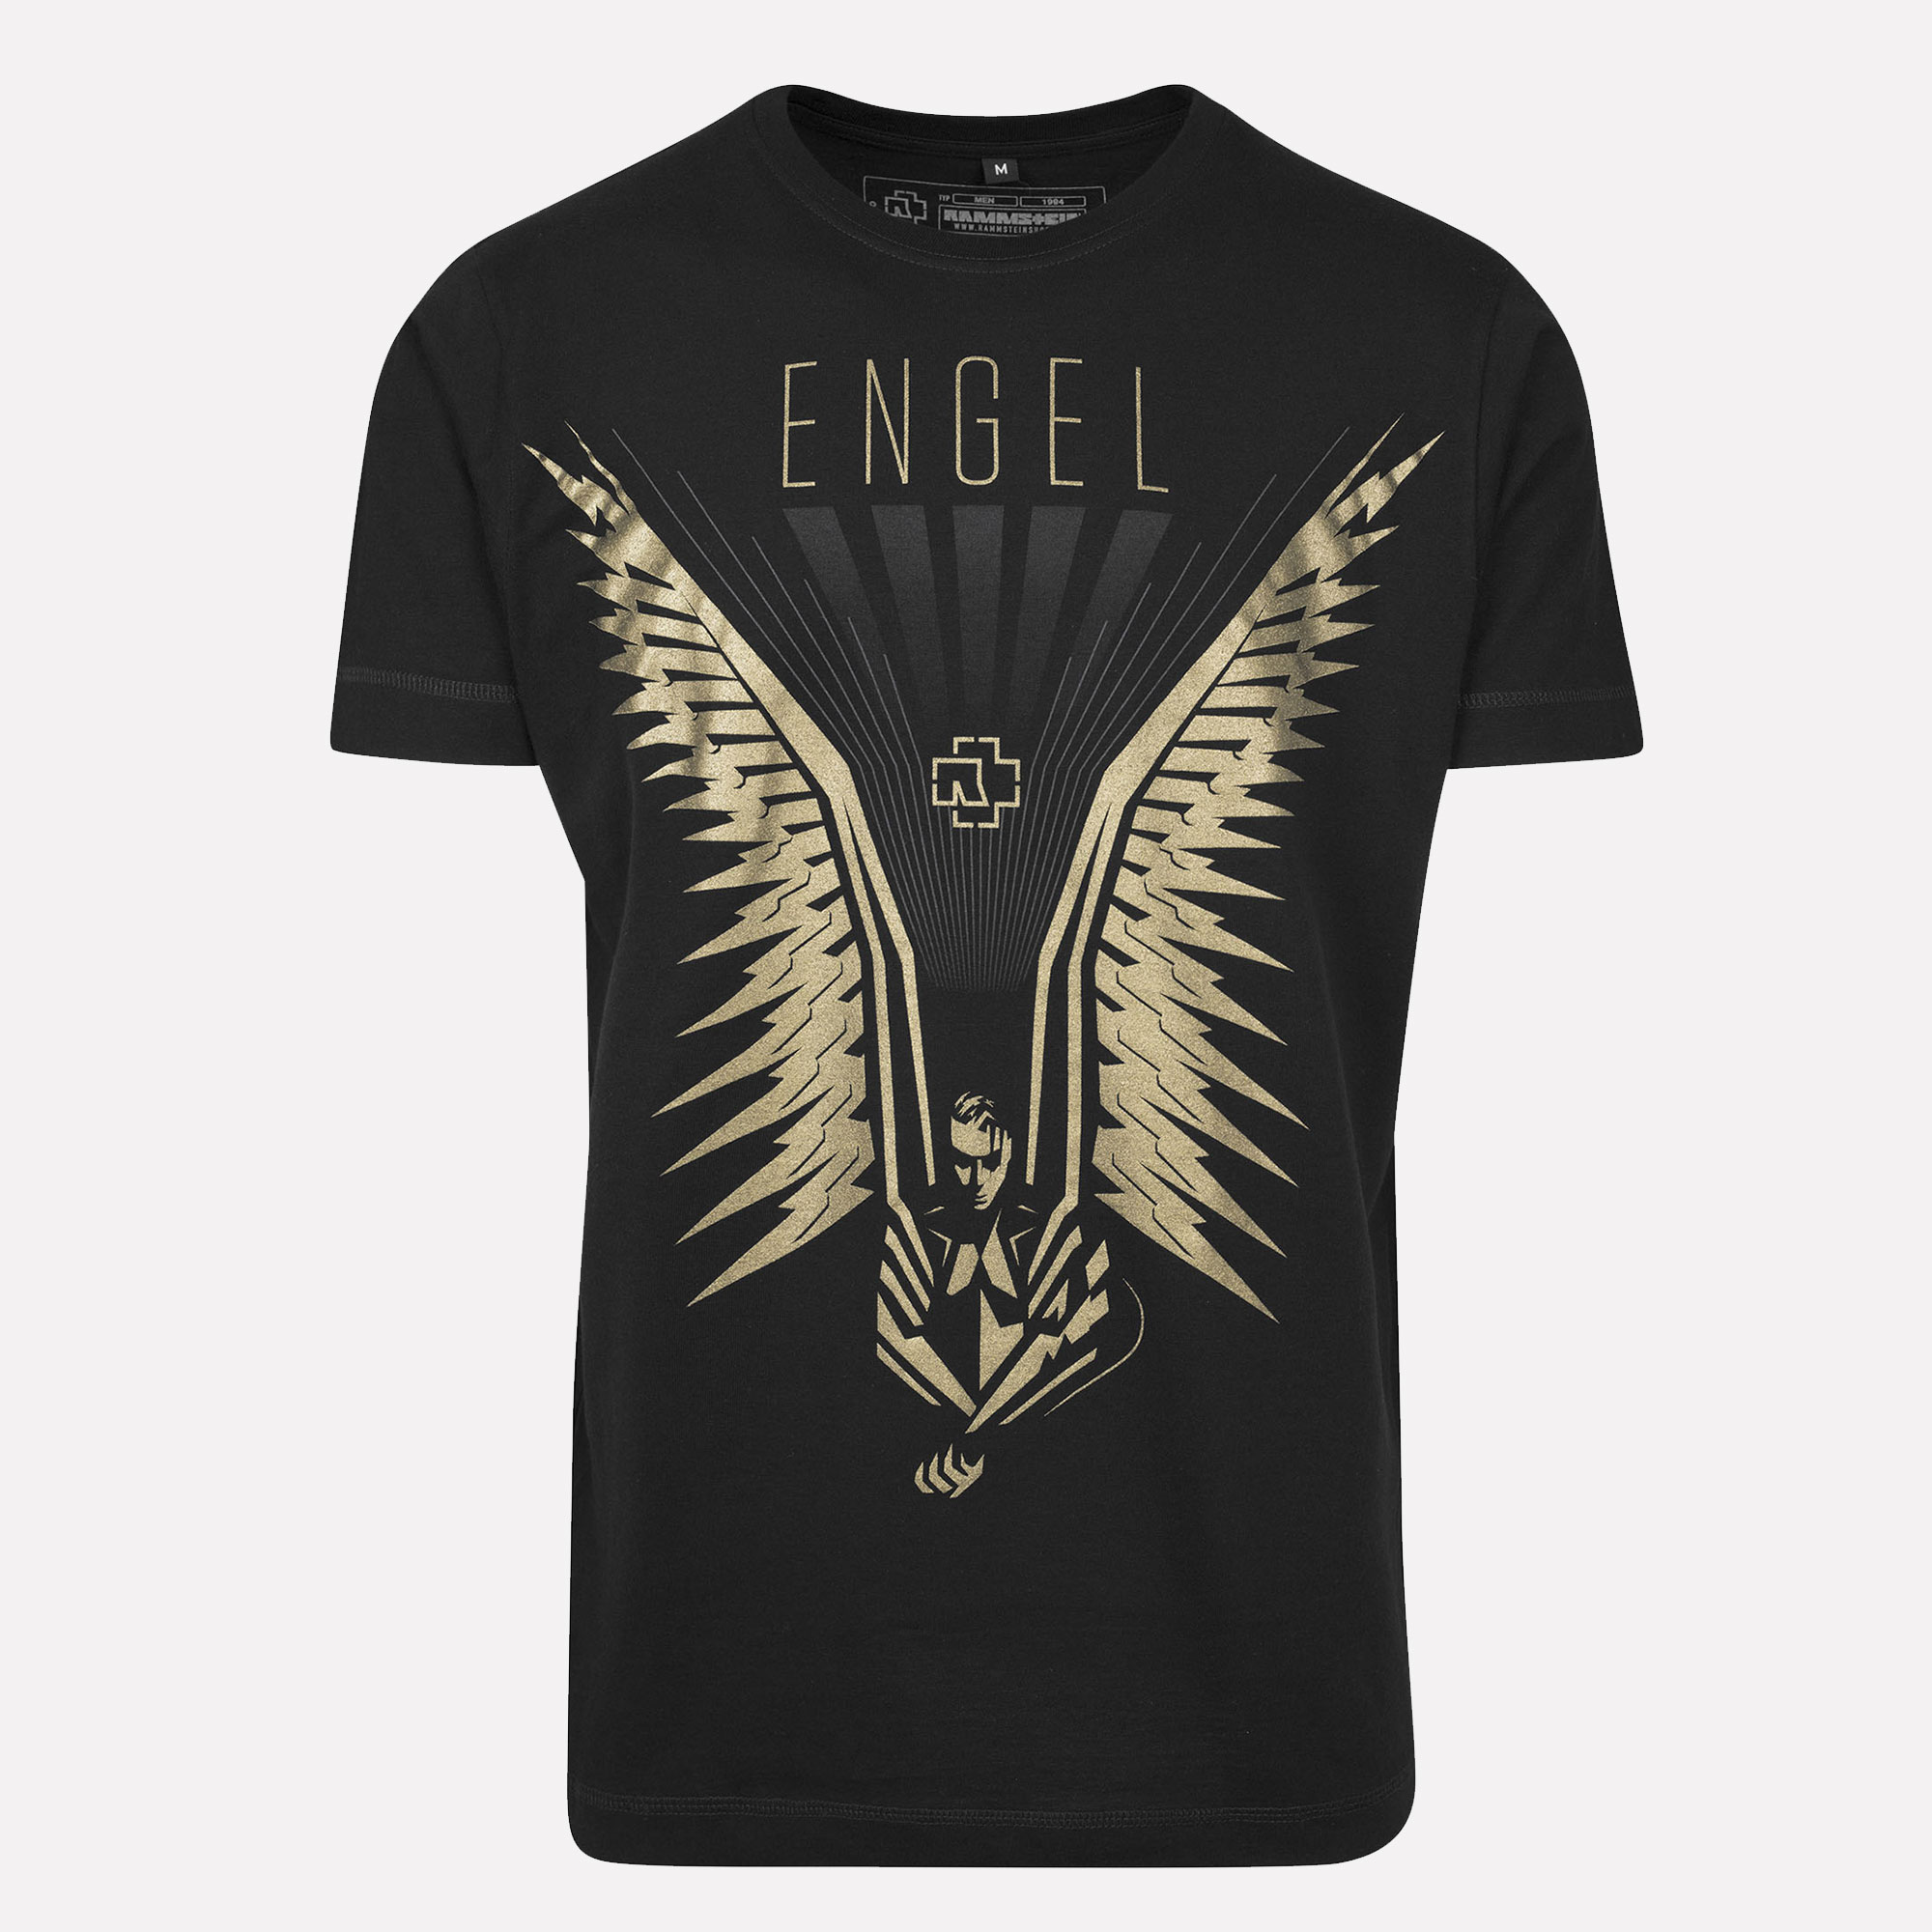 83698267b8a293 Merchcode Rammstein Herren T-Shirt Metal Band Shirt Engel Hemd ...